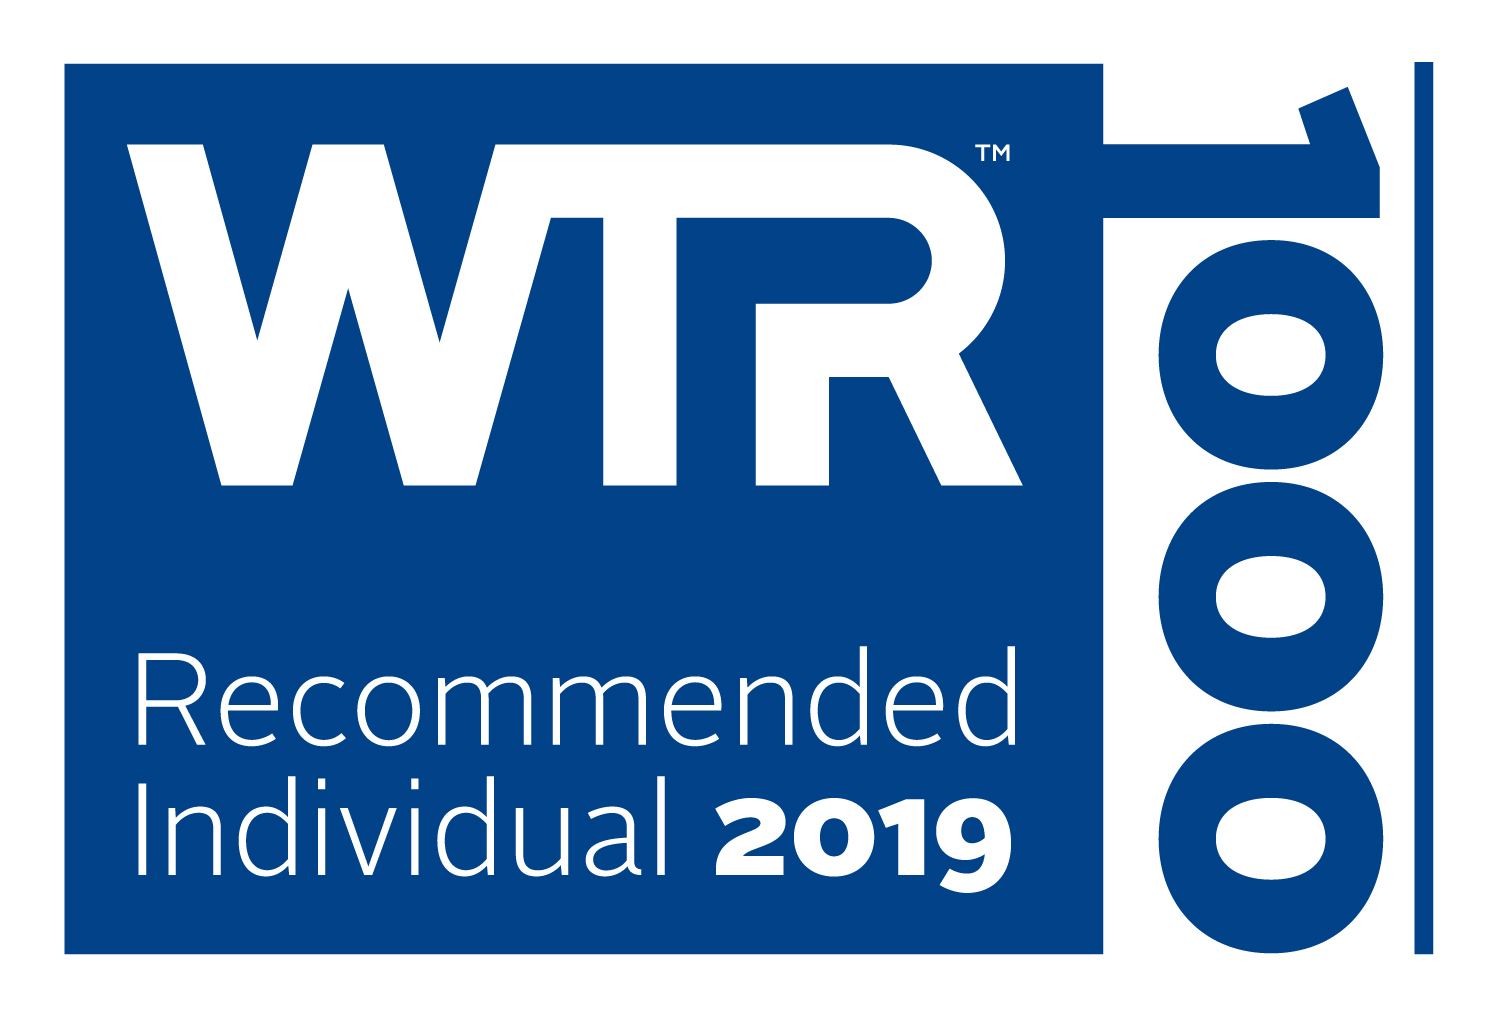 WTR 1000 Recommended Individual 2019.jpg